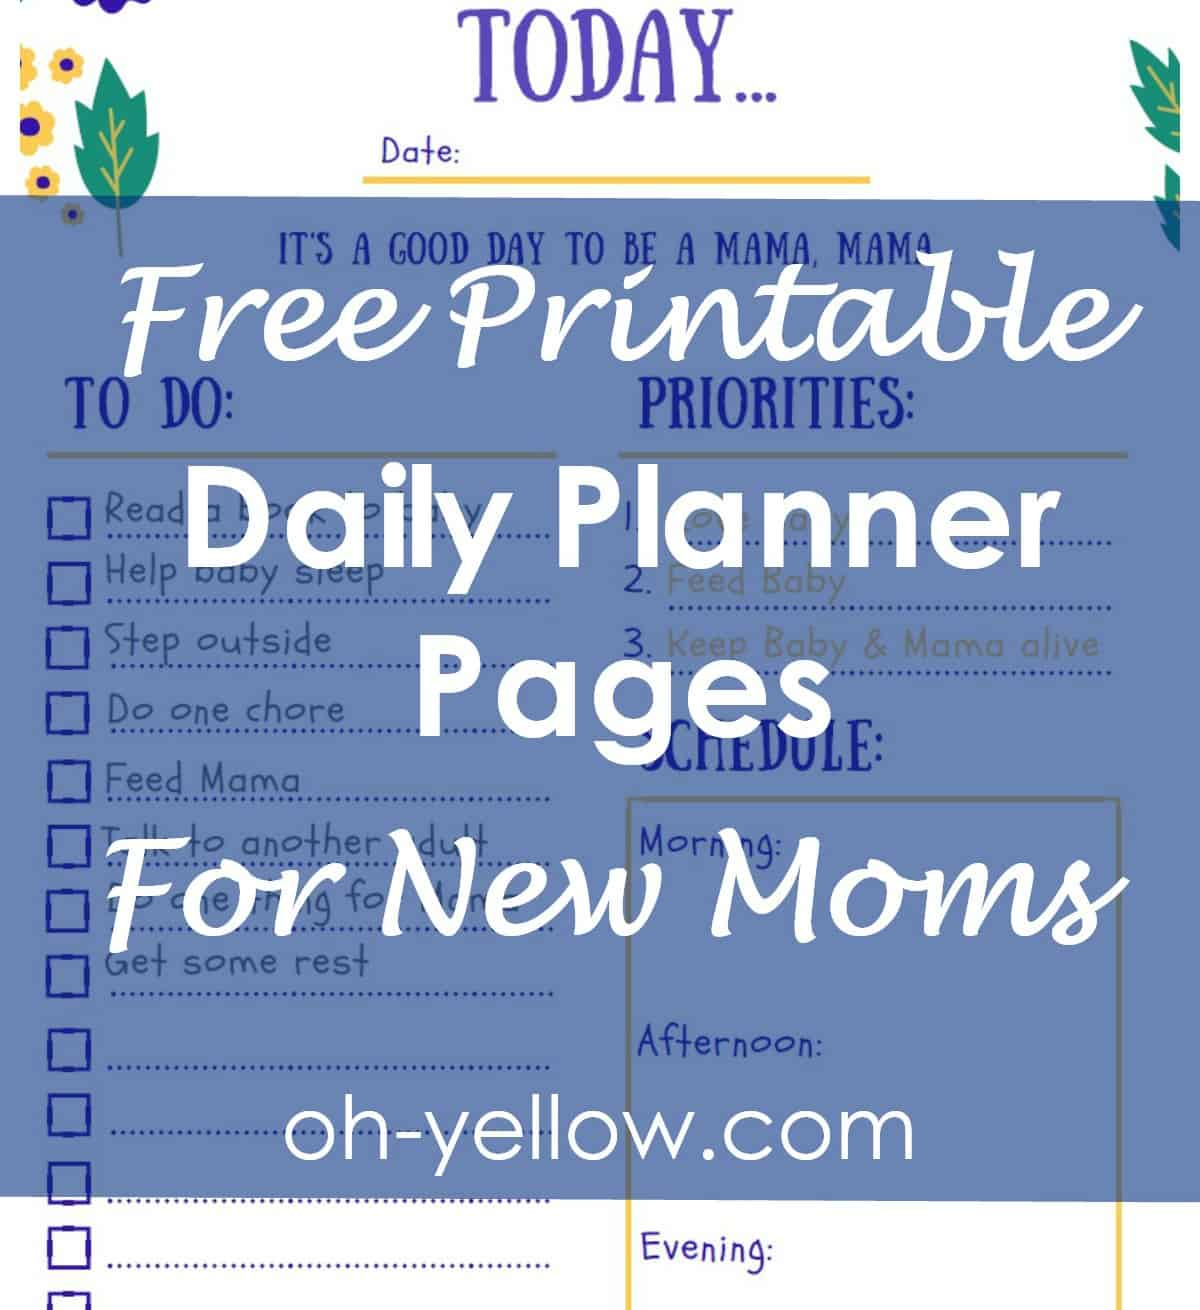 New mom, what is enough? Postpartum and having a new baby is hard. If you feel overwhelmed by all the to-do's that come with life after having a new baby, you're not alone. (And this free printable daily planner for new moms will help!) Whether you're a stay-at-home mom or on maternity leave, here is what you need to know...